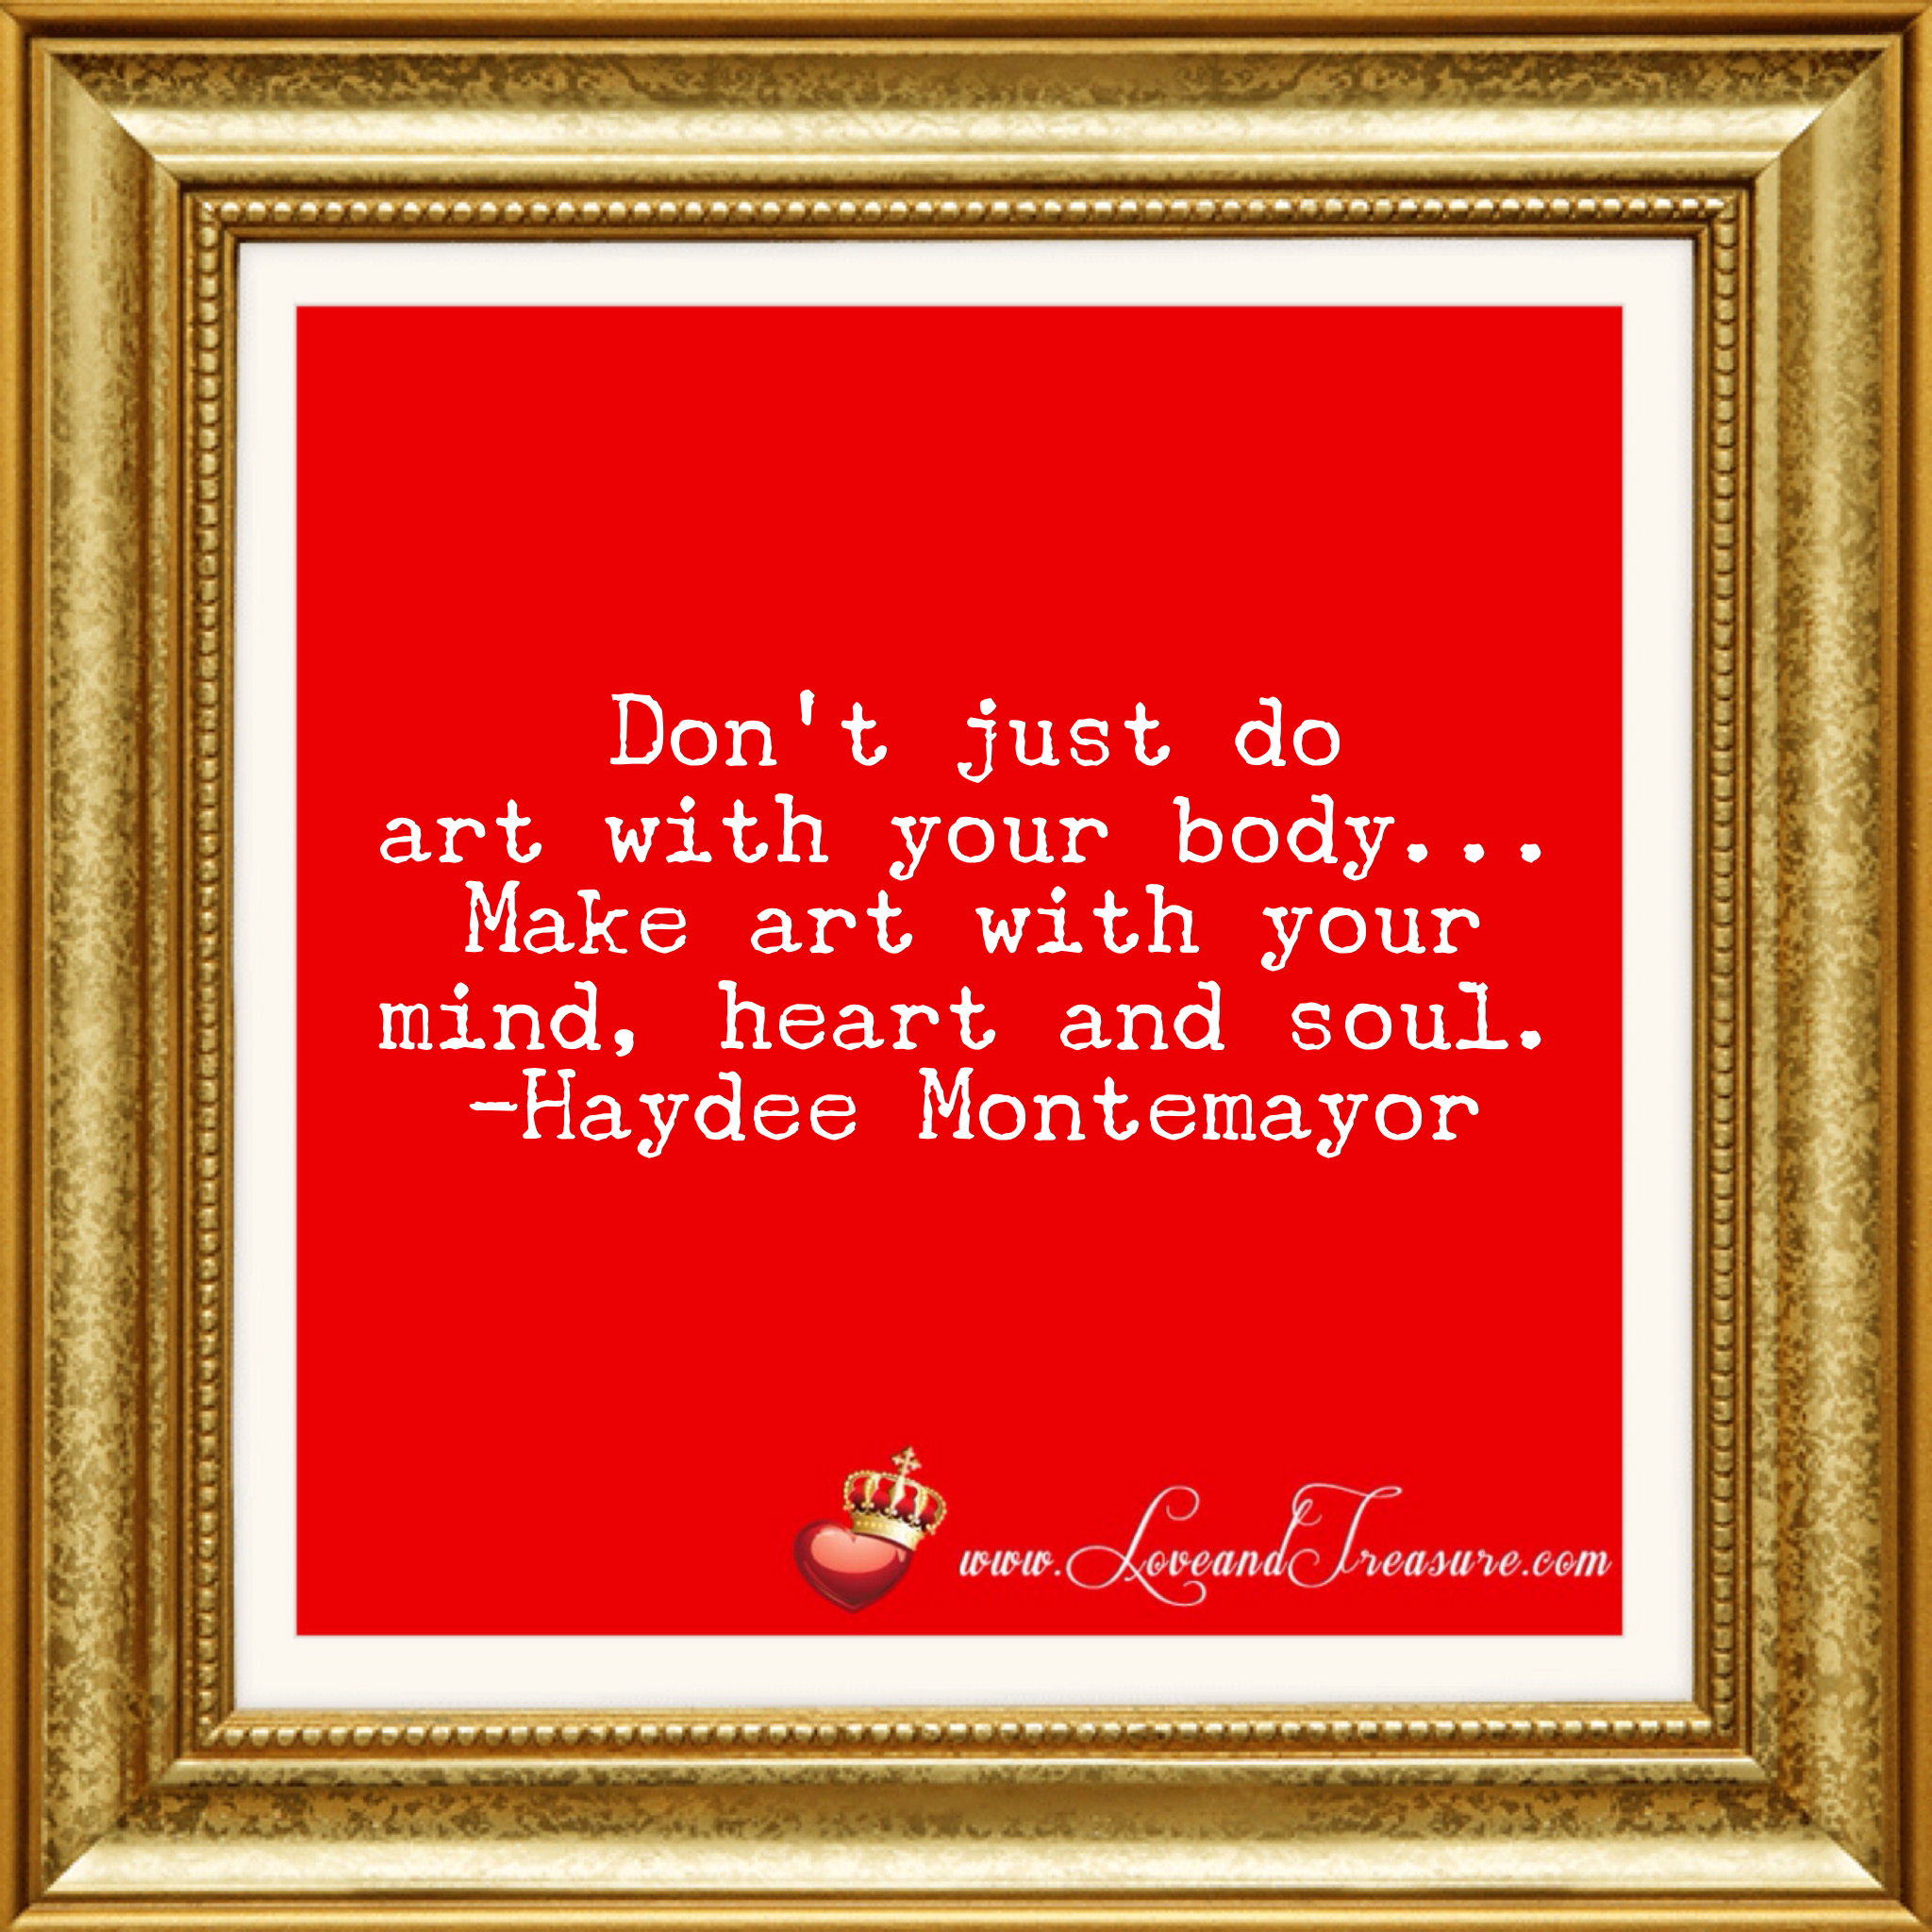 Don't just do art with your body make art with your mind, heart and soul by Haydee Montemayor from Love and Treasure blog www.loveandtreasure.com